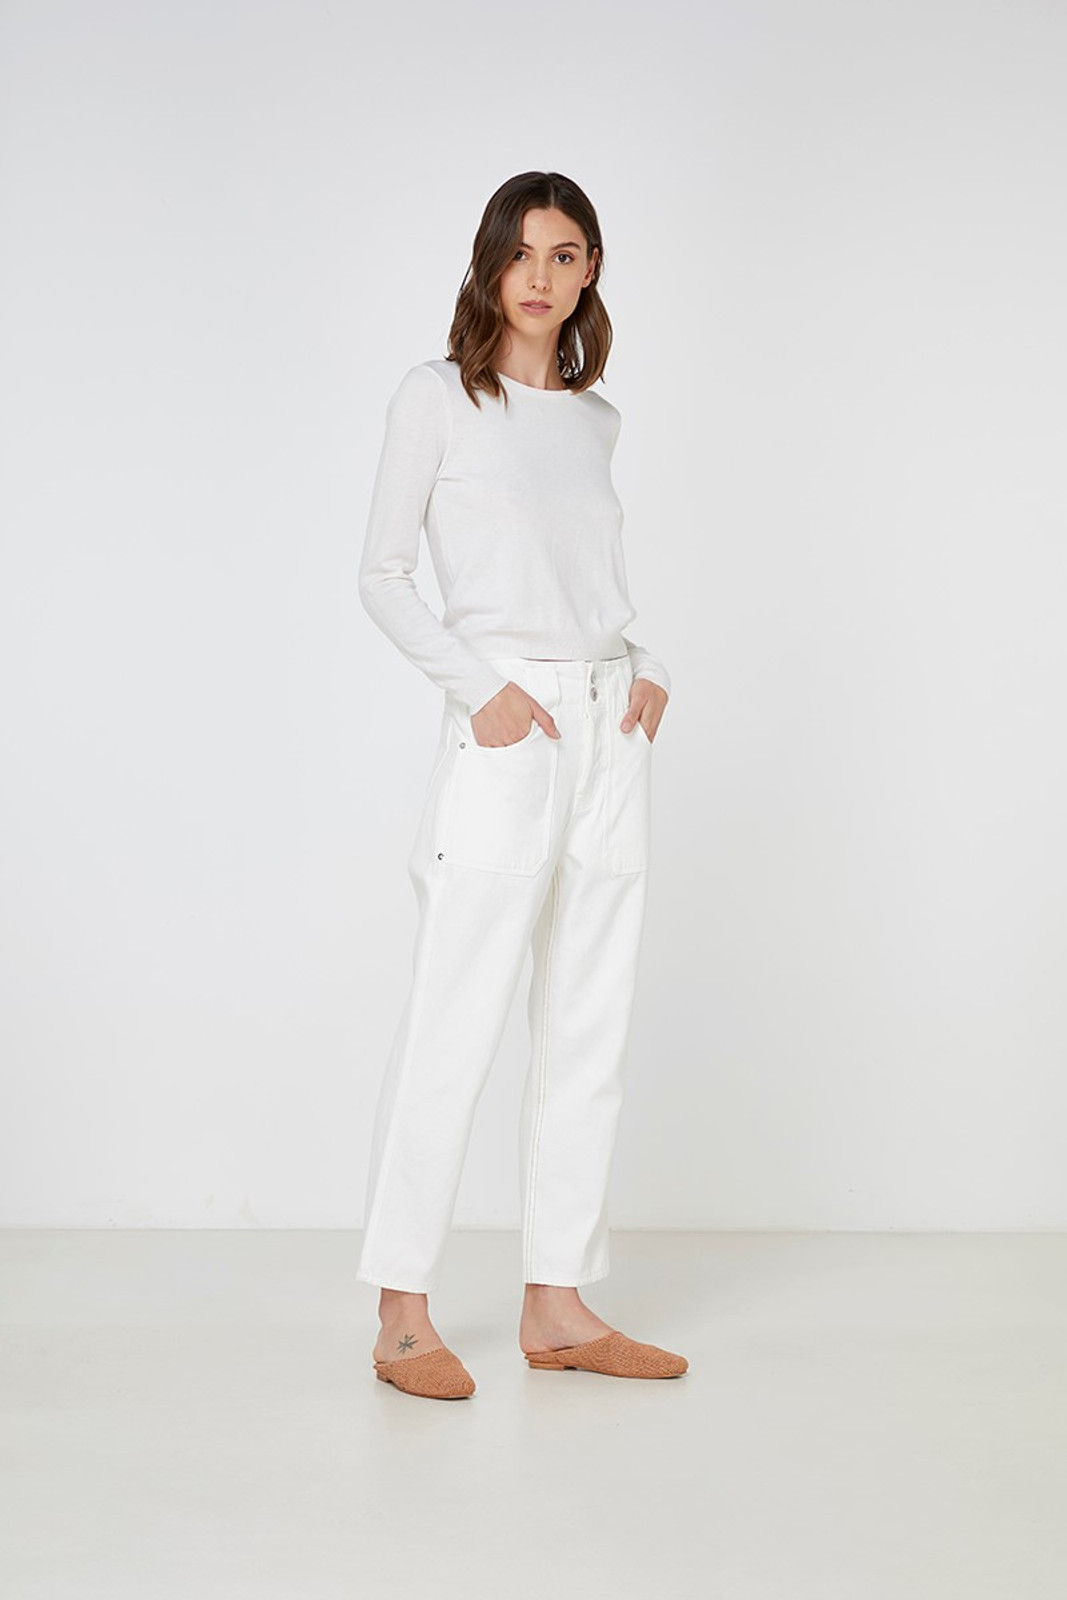 Elka Collective Gale Knit White  5